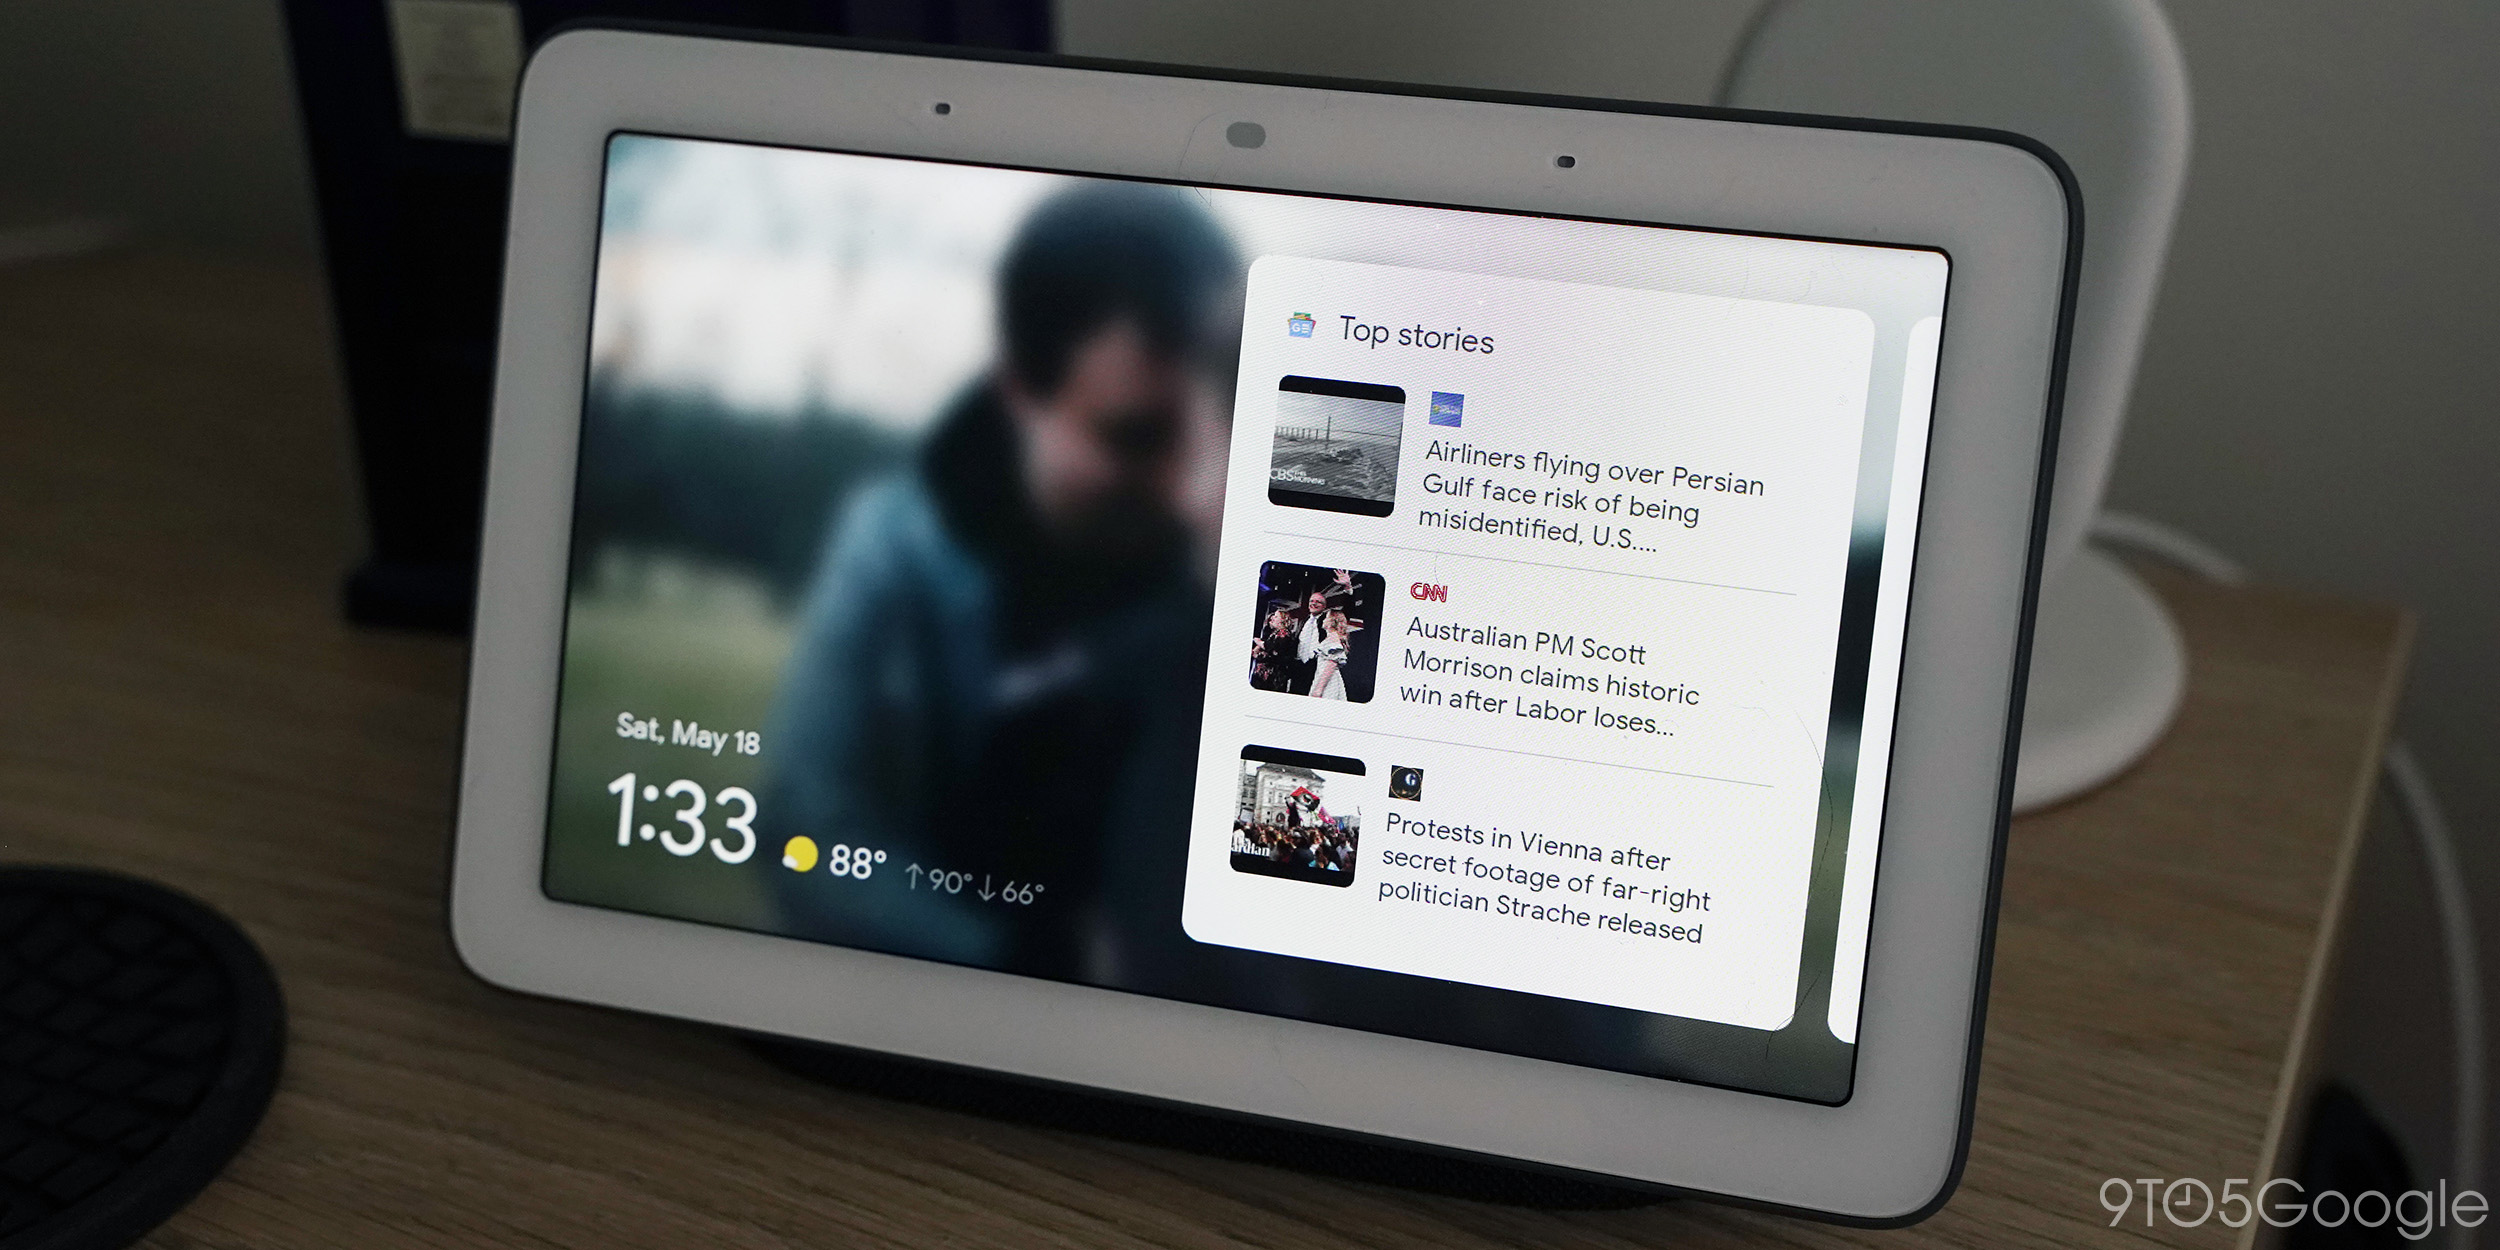 Google rolling out new Smart Display UI with revamped homescreen